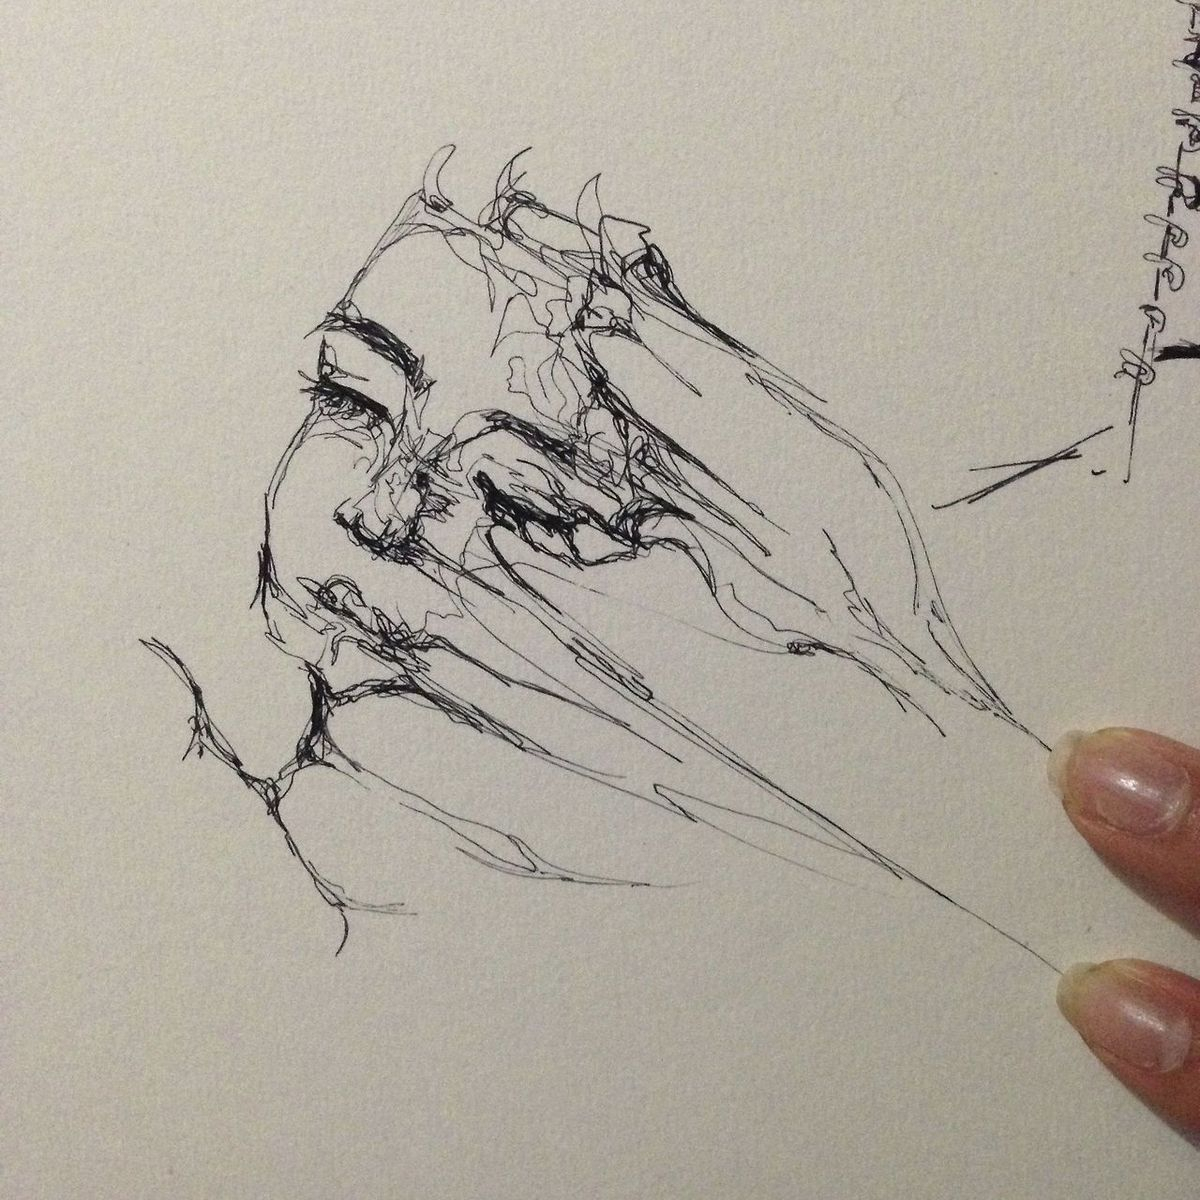 Deep Drawing Ideas at GetDrawings com | Free for personal